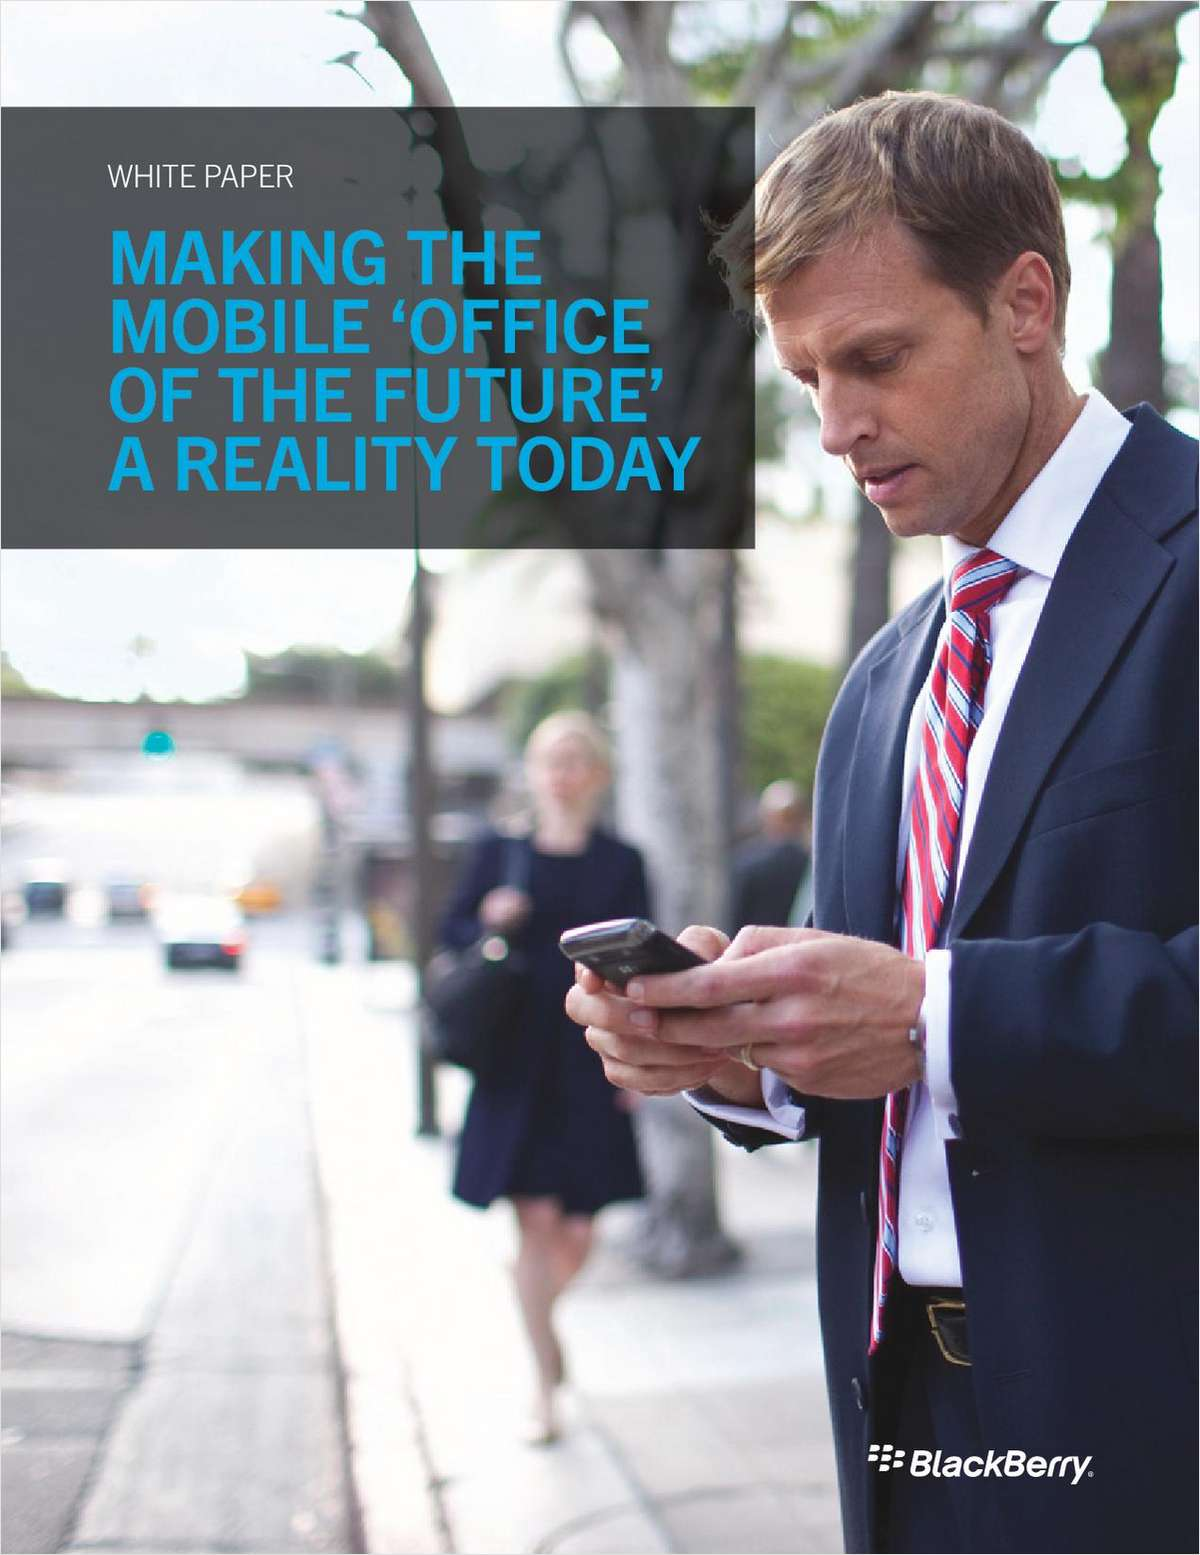 Making the Mobile 'Office of the Future' a Reality Today